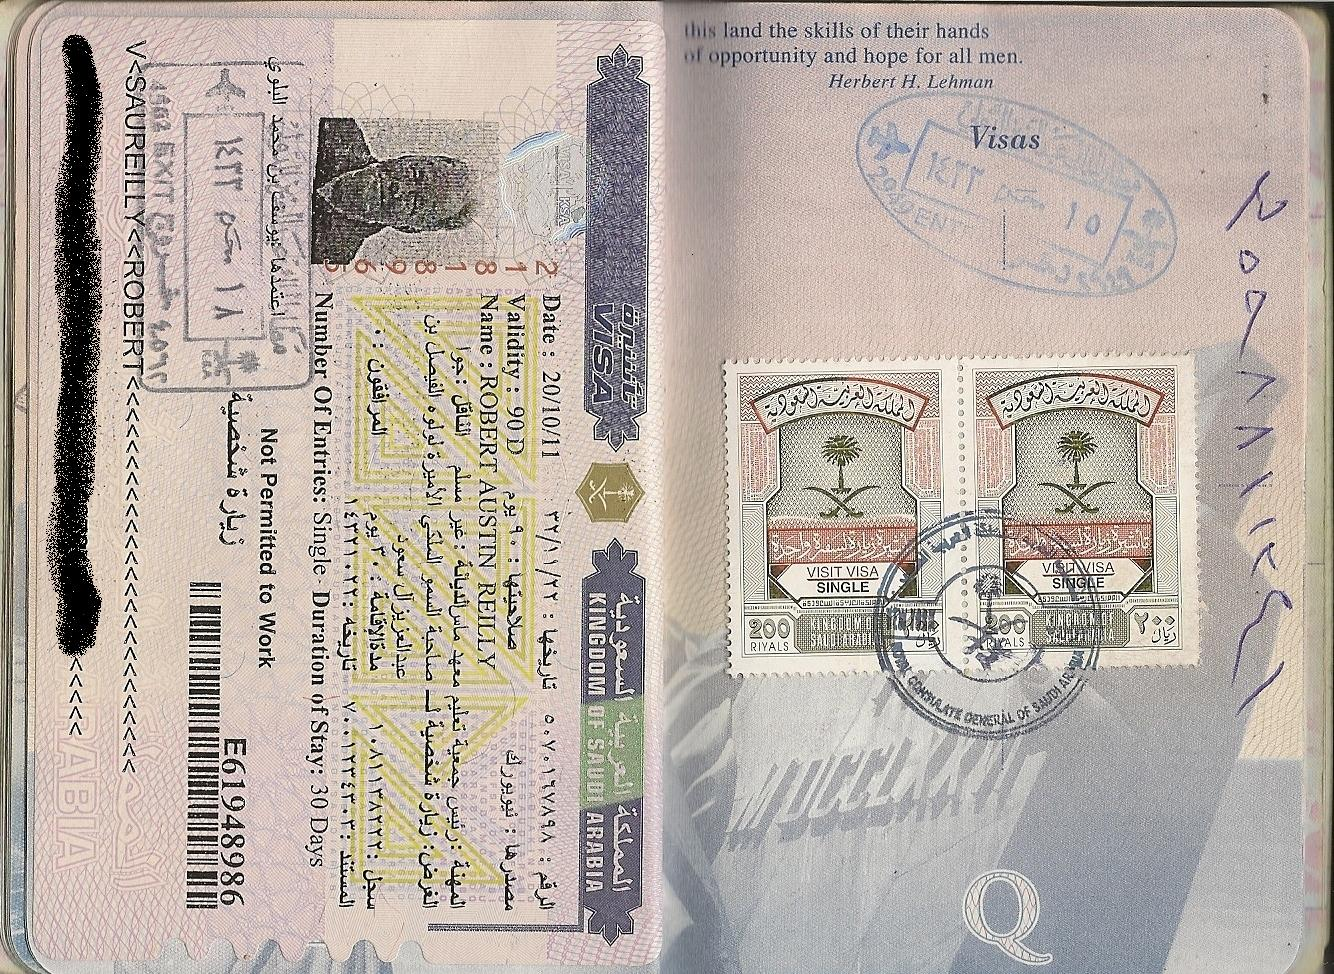 Rob Reilly's pport pages on visa credit card application form, china visa application form, vietnam visa application form,